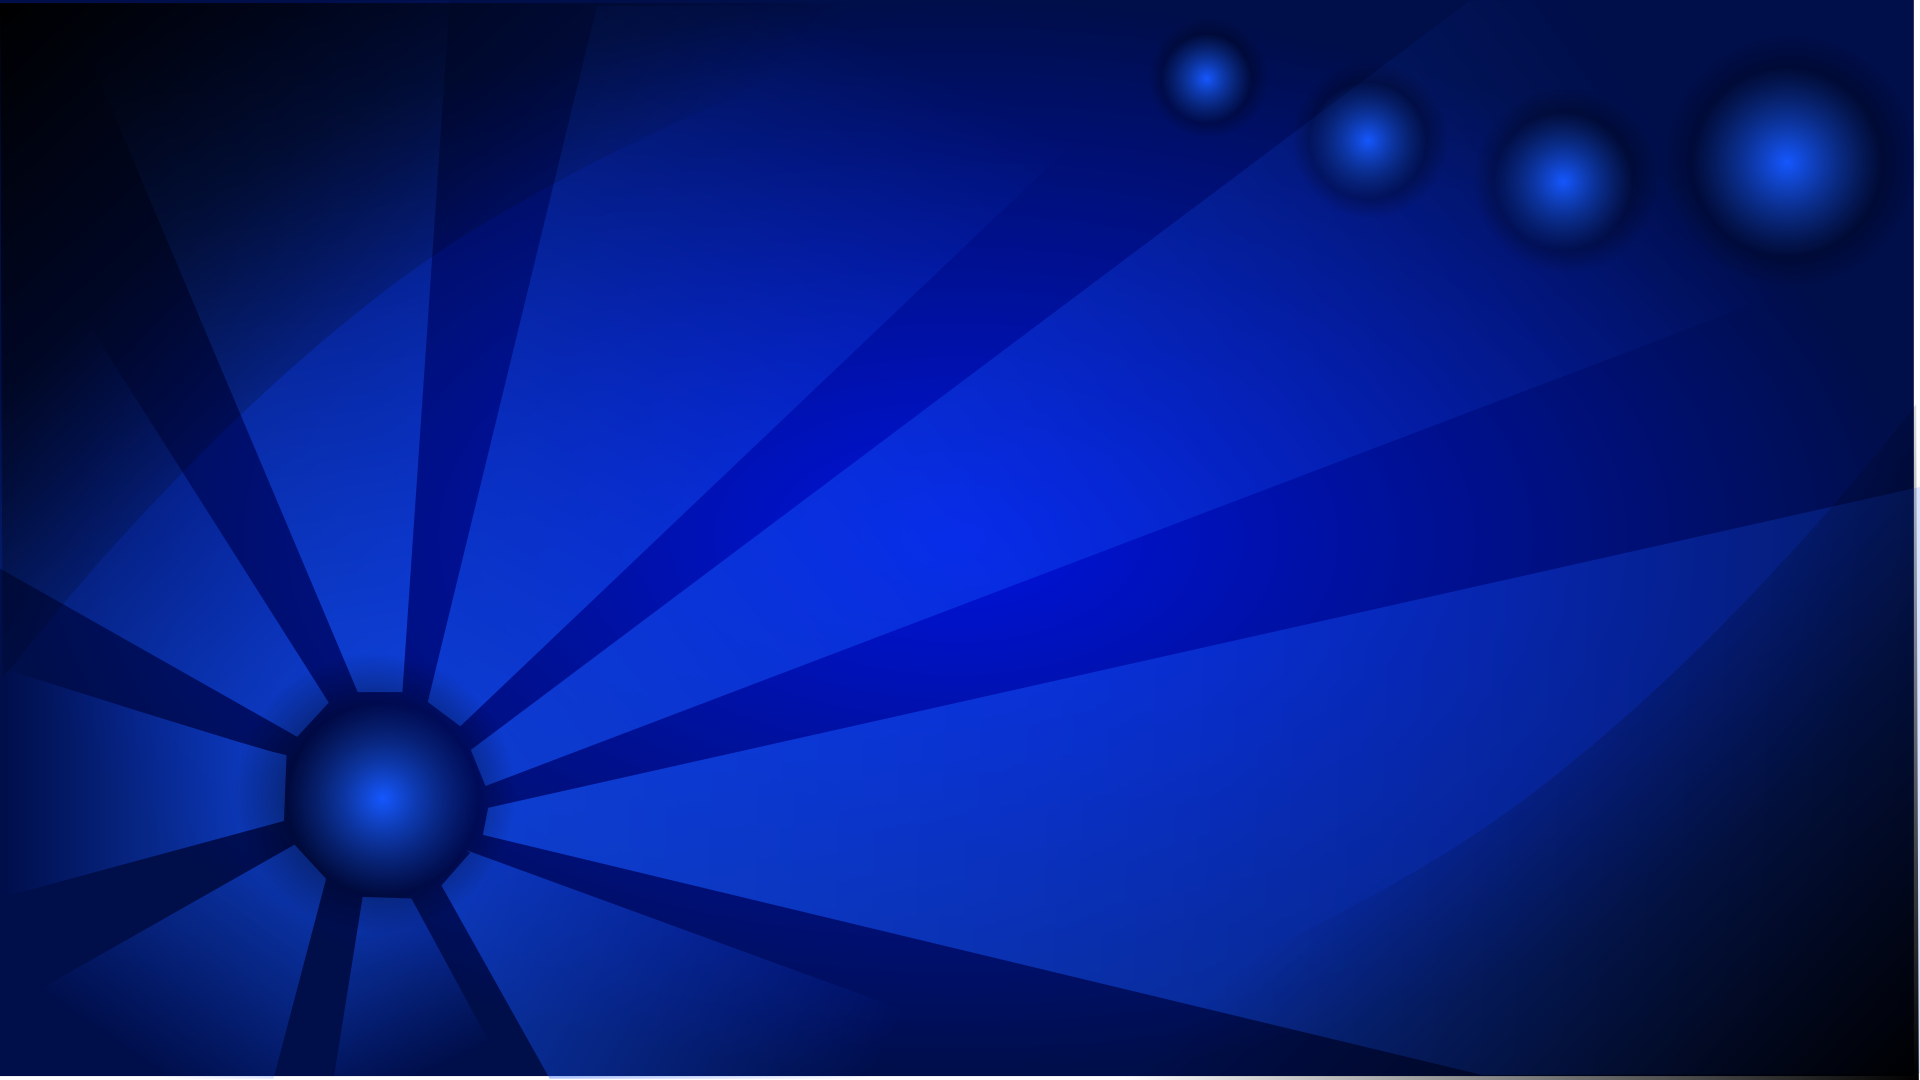 Abstract Background Blue Dark Free Image